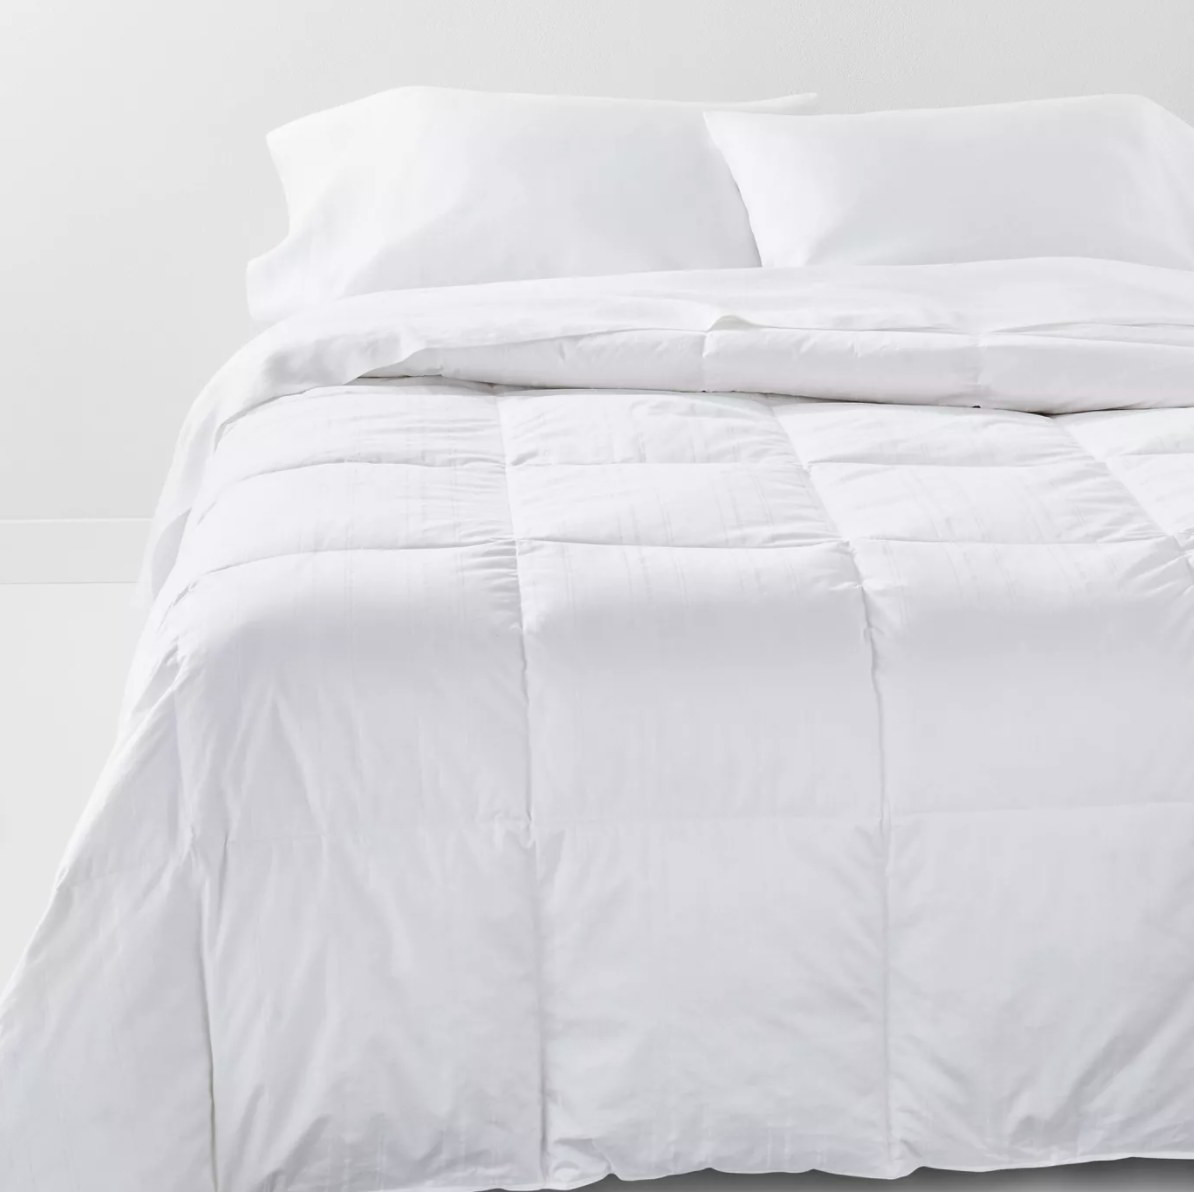 The white quilted down comforter